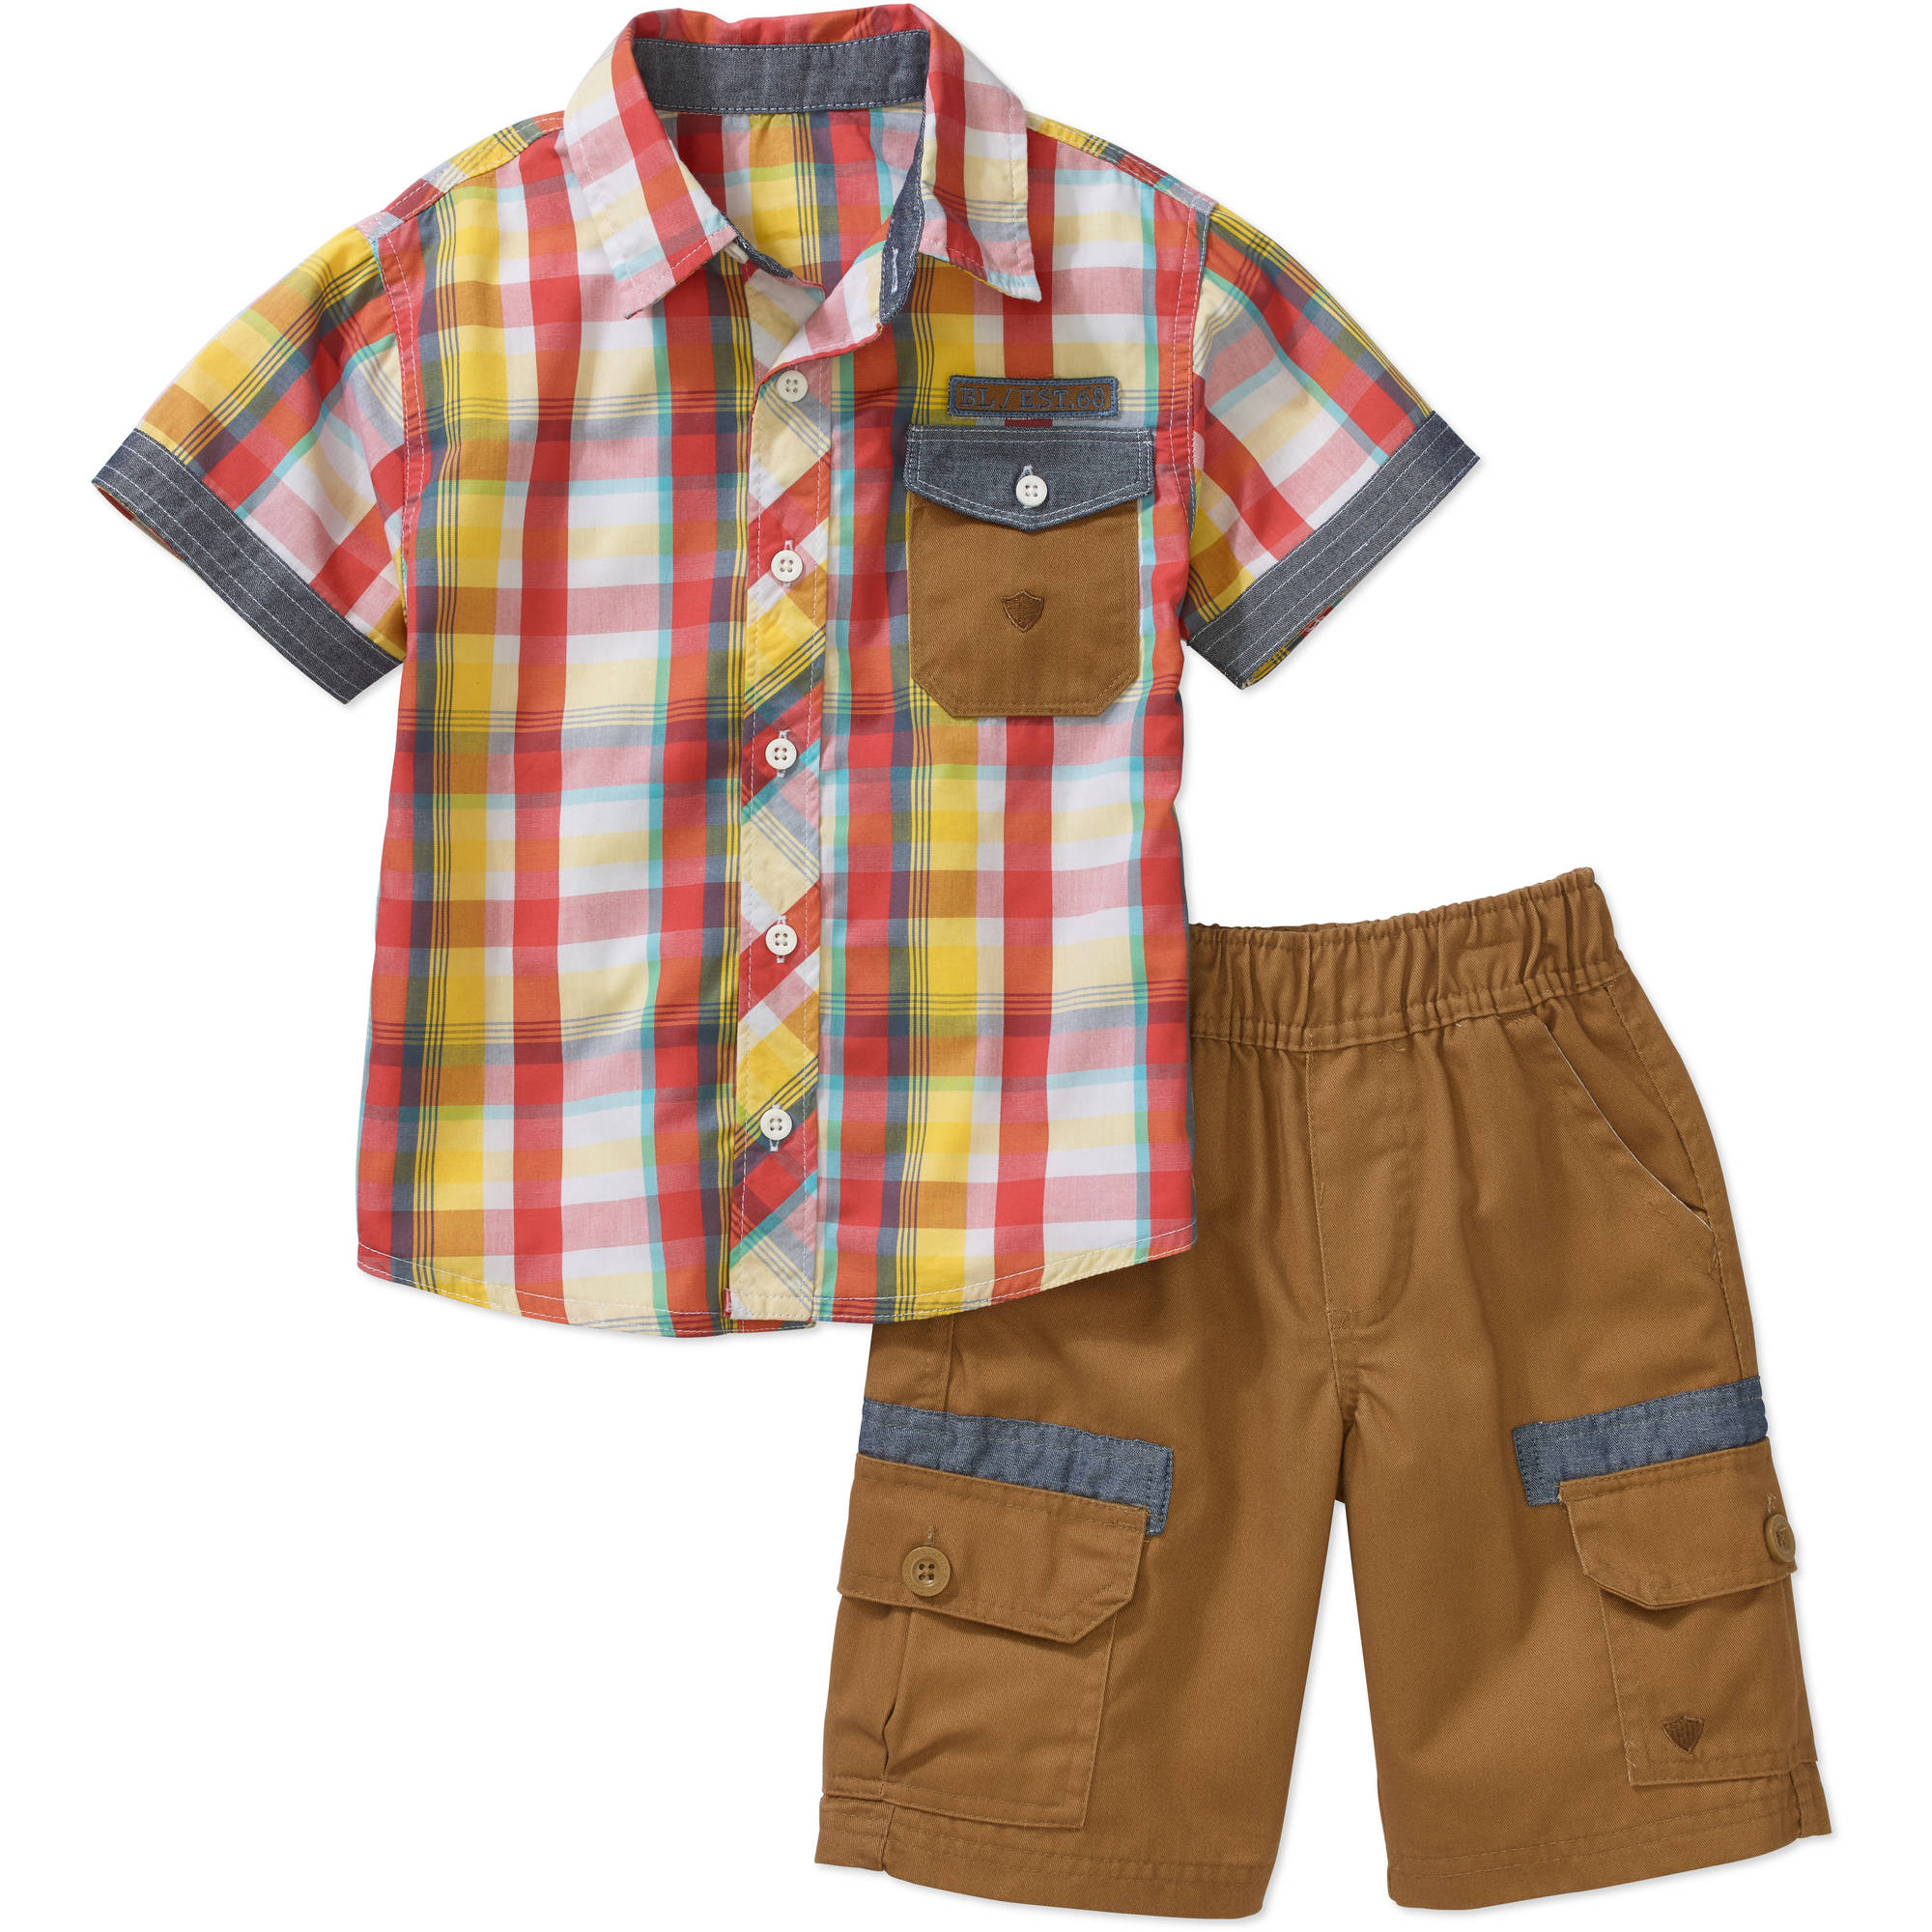 Little Boys 2 Piece Yarn-Dye Shirt with Chambray Details & Twill Pull-on Cargo Shorts Set